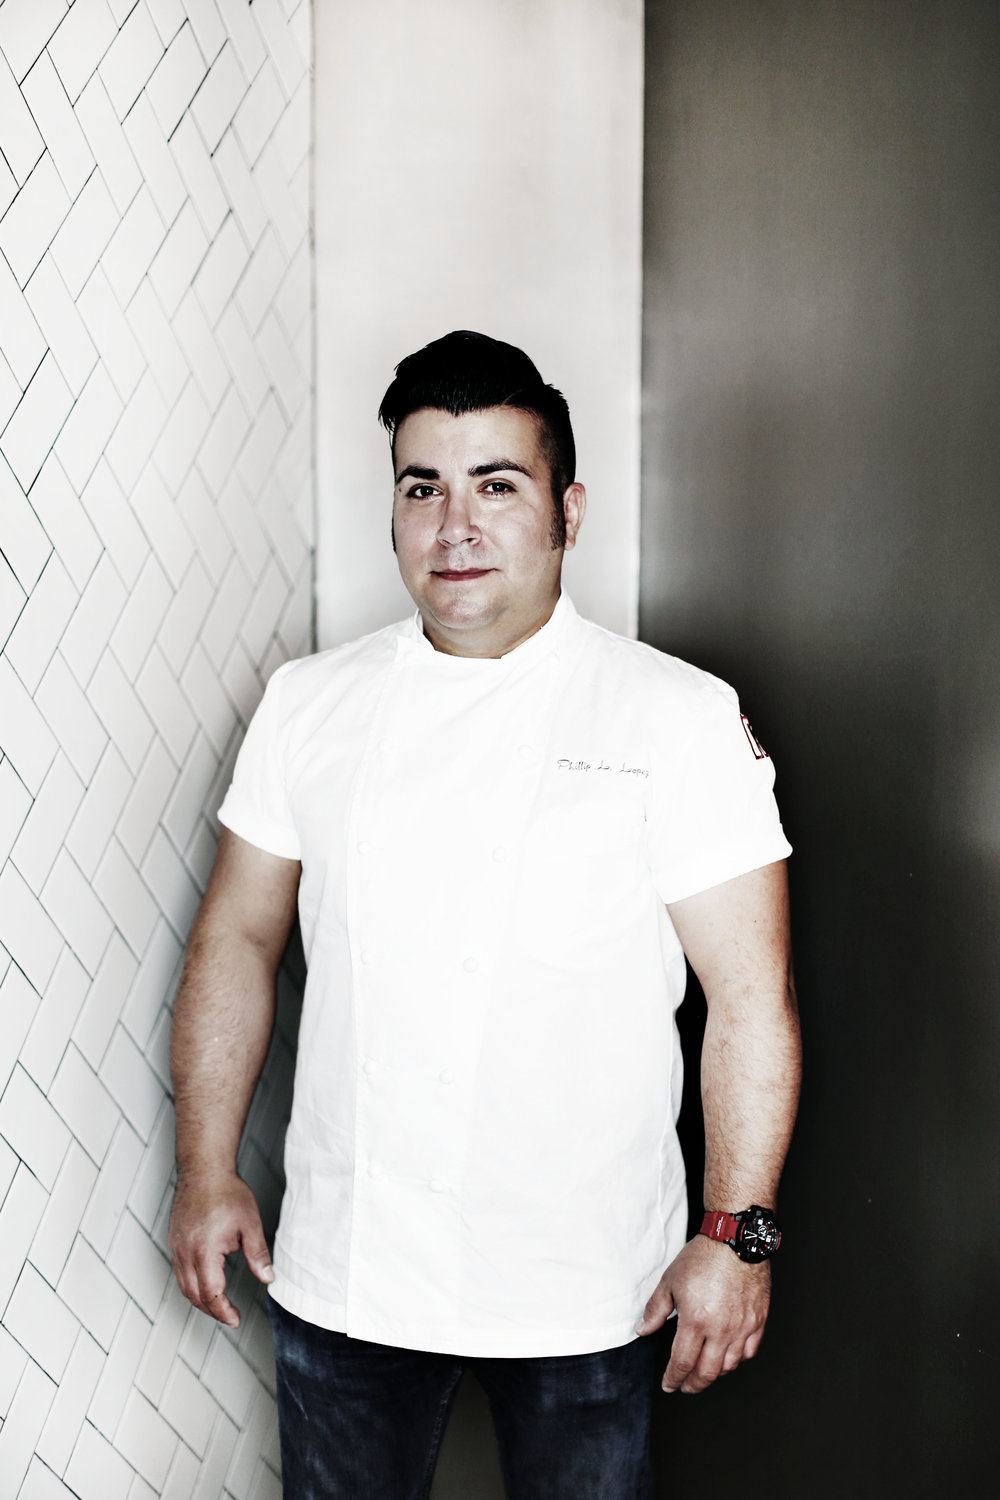 Chef Phillip L. Lopez - Chef Phillip L. Lopez is the Executive Chef, Creative Director and Owner of Rebel Restaurant Group